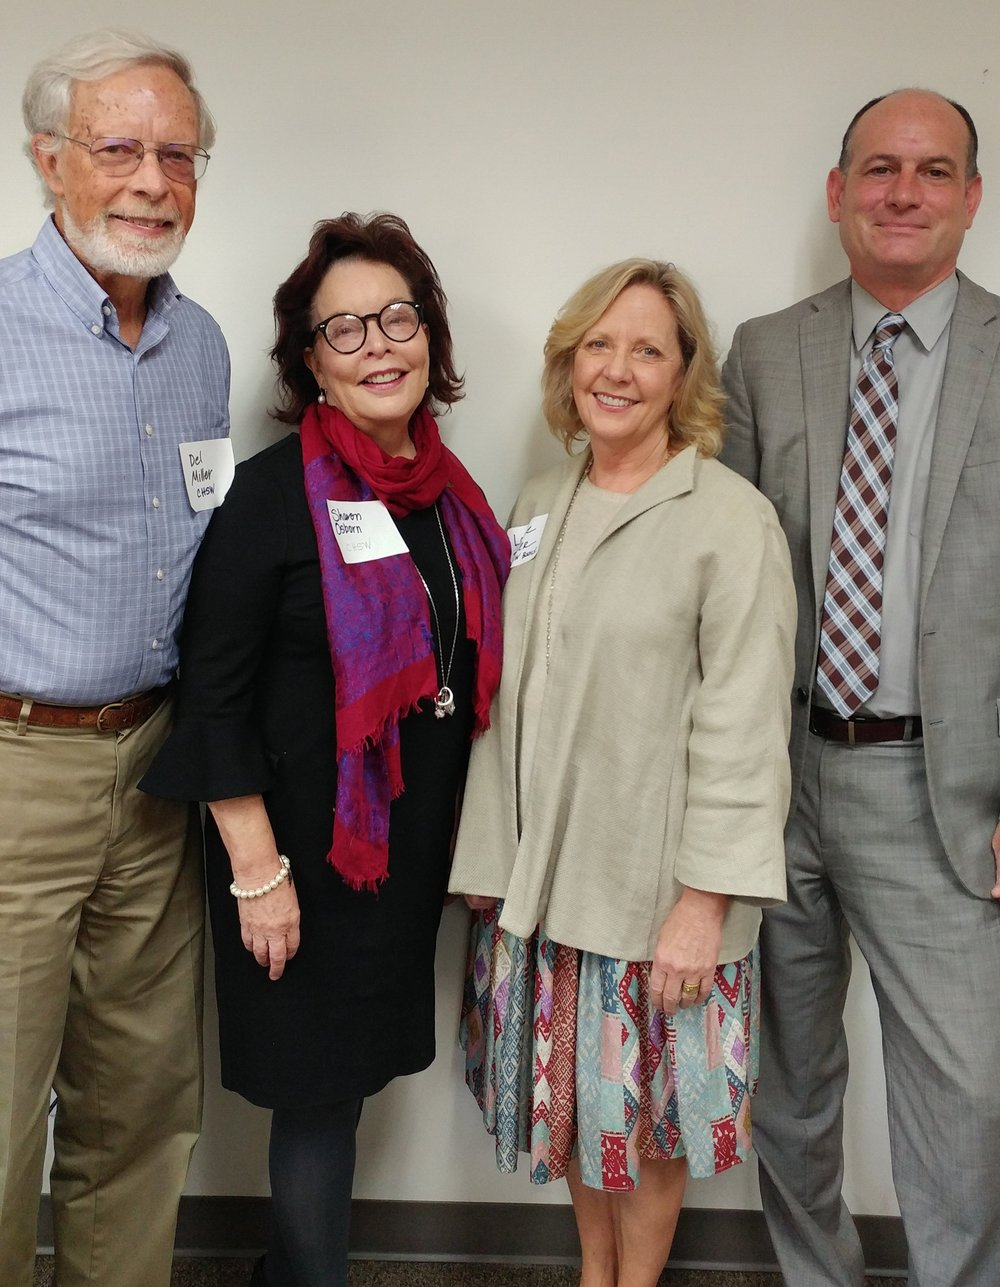 Photo from left to right:  Del Miller, CHSW board; Sharon Osborne, CHSW president/CEO; Louise Parker, CHSW board;   Frank Ordway, director of Government and Community Affairs for the new Department for Children, Youth and Families.